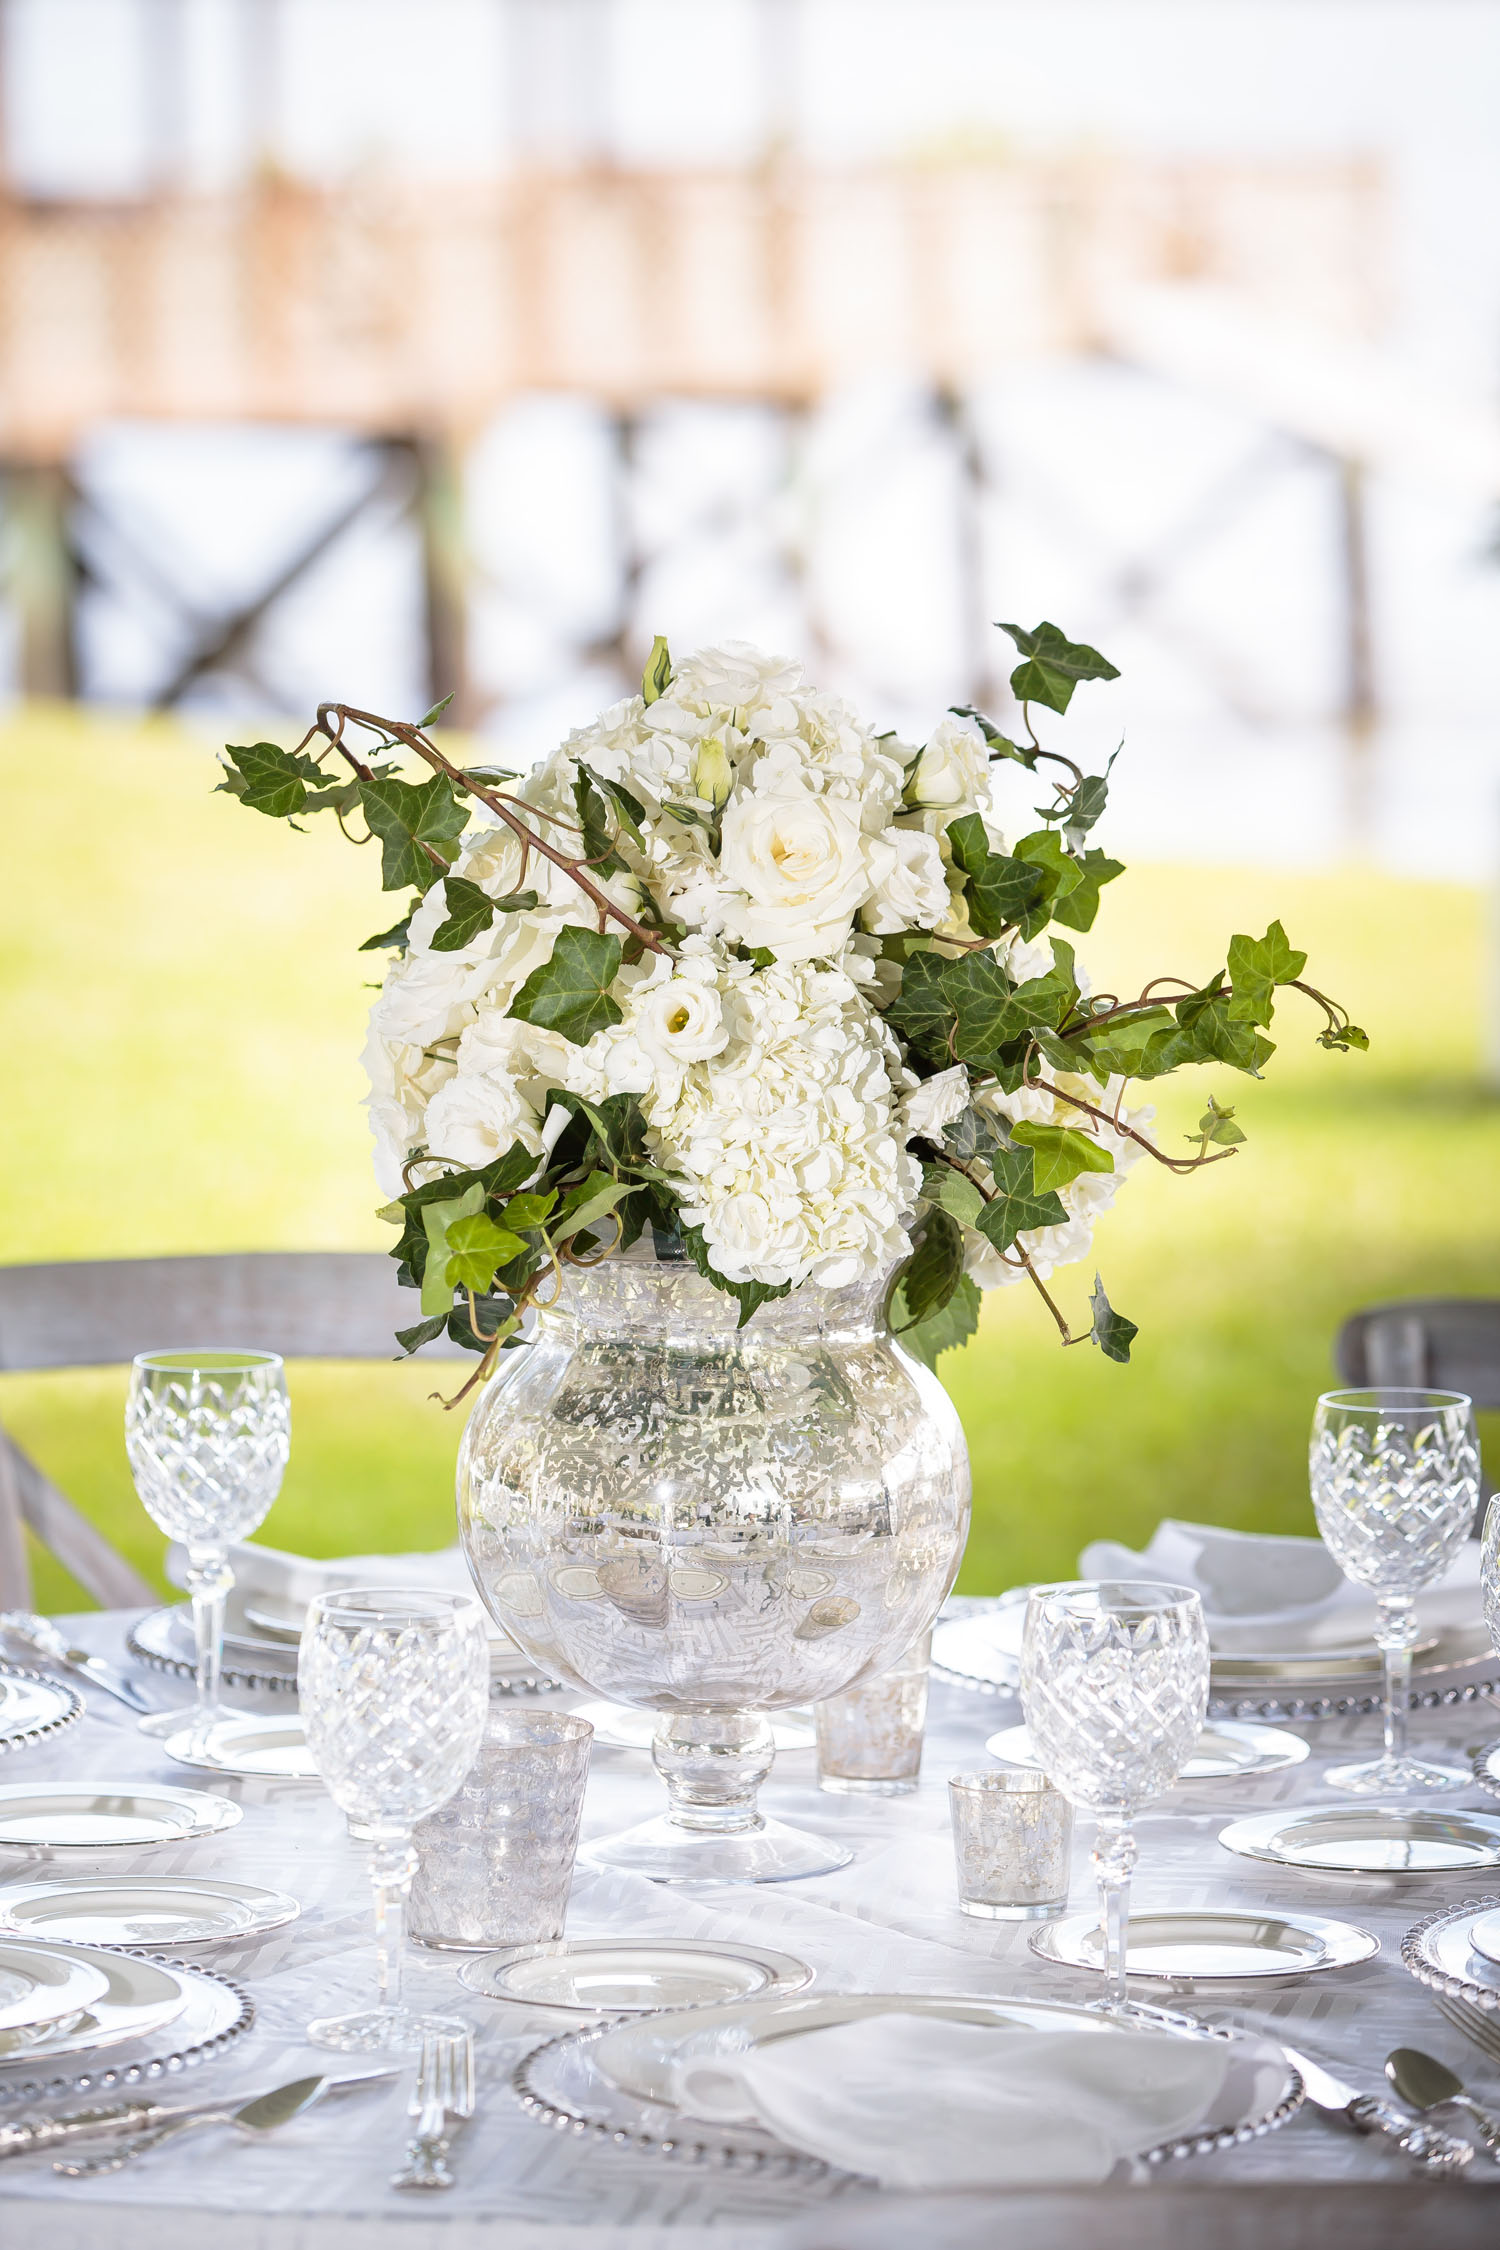 Wedding Ideas: 11 Sleek Silver Details for Your Wedding - Inside ...